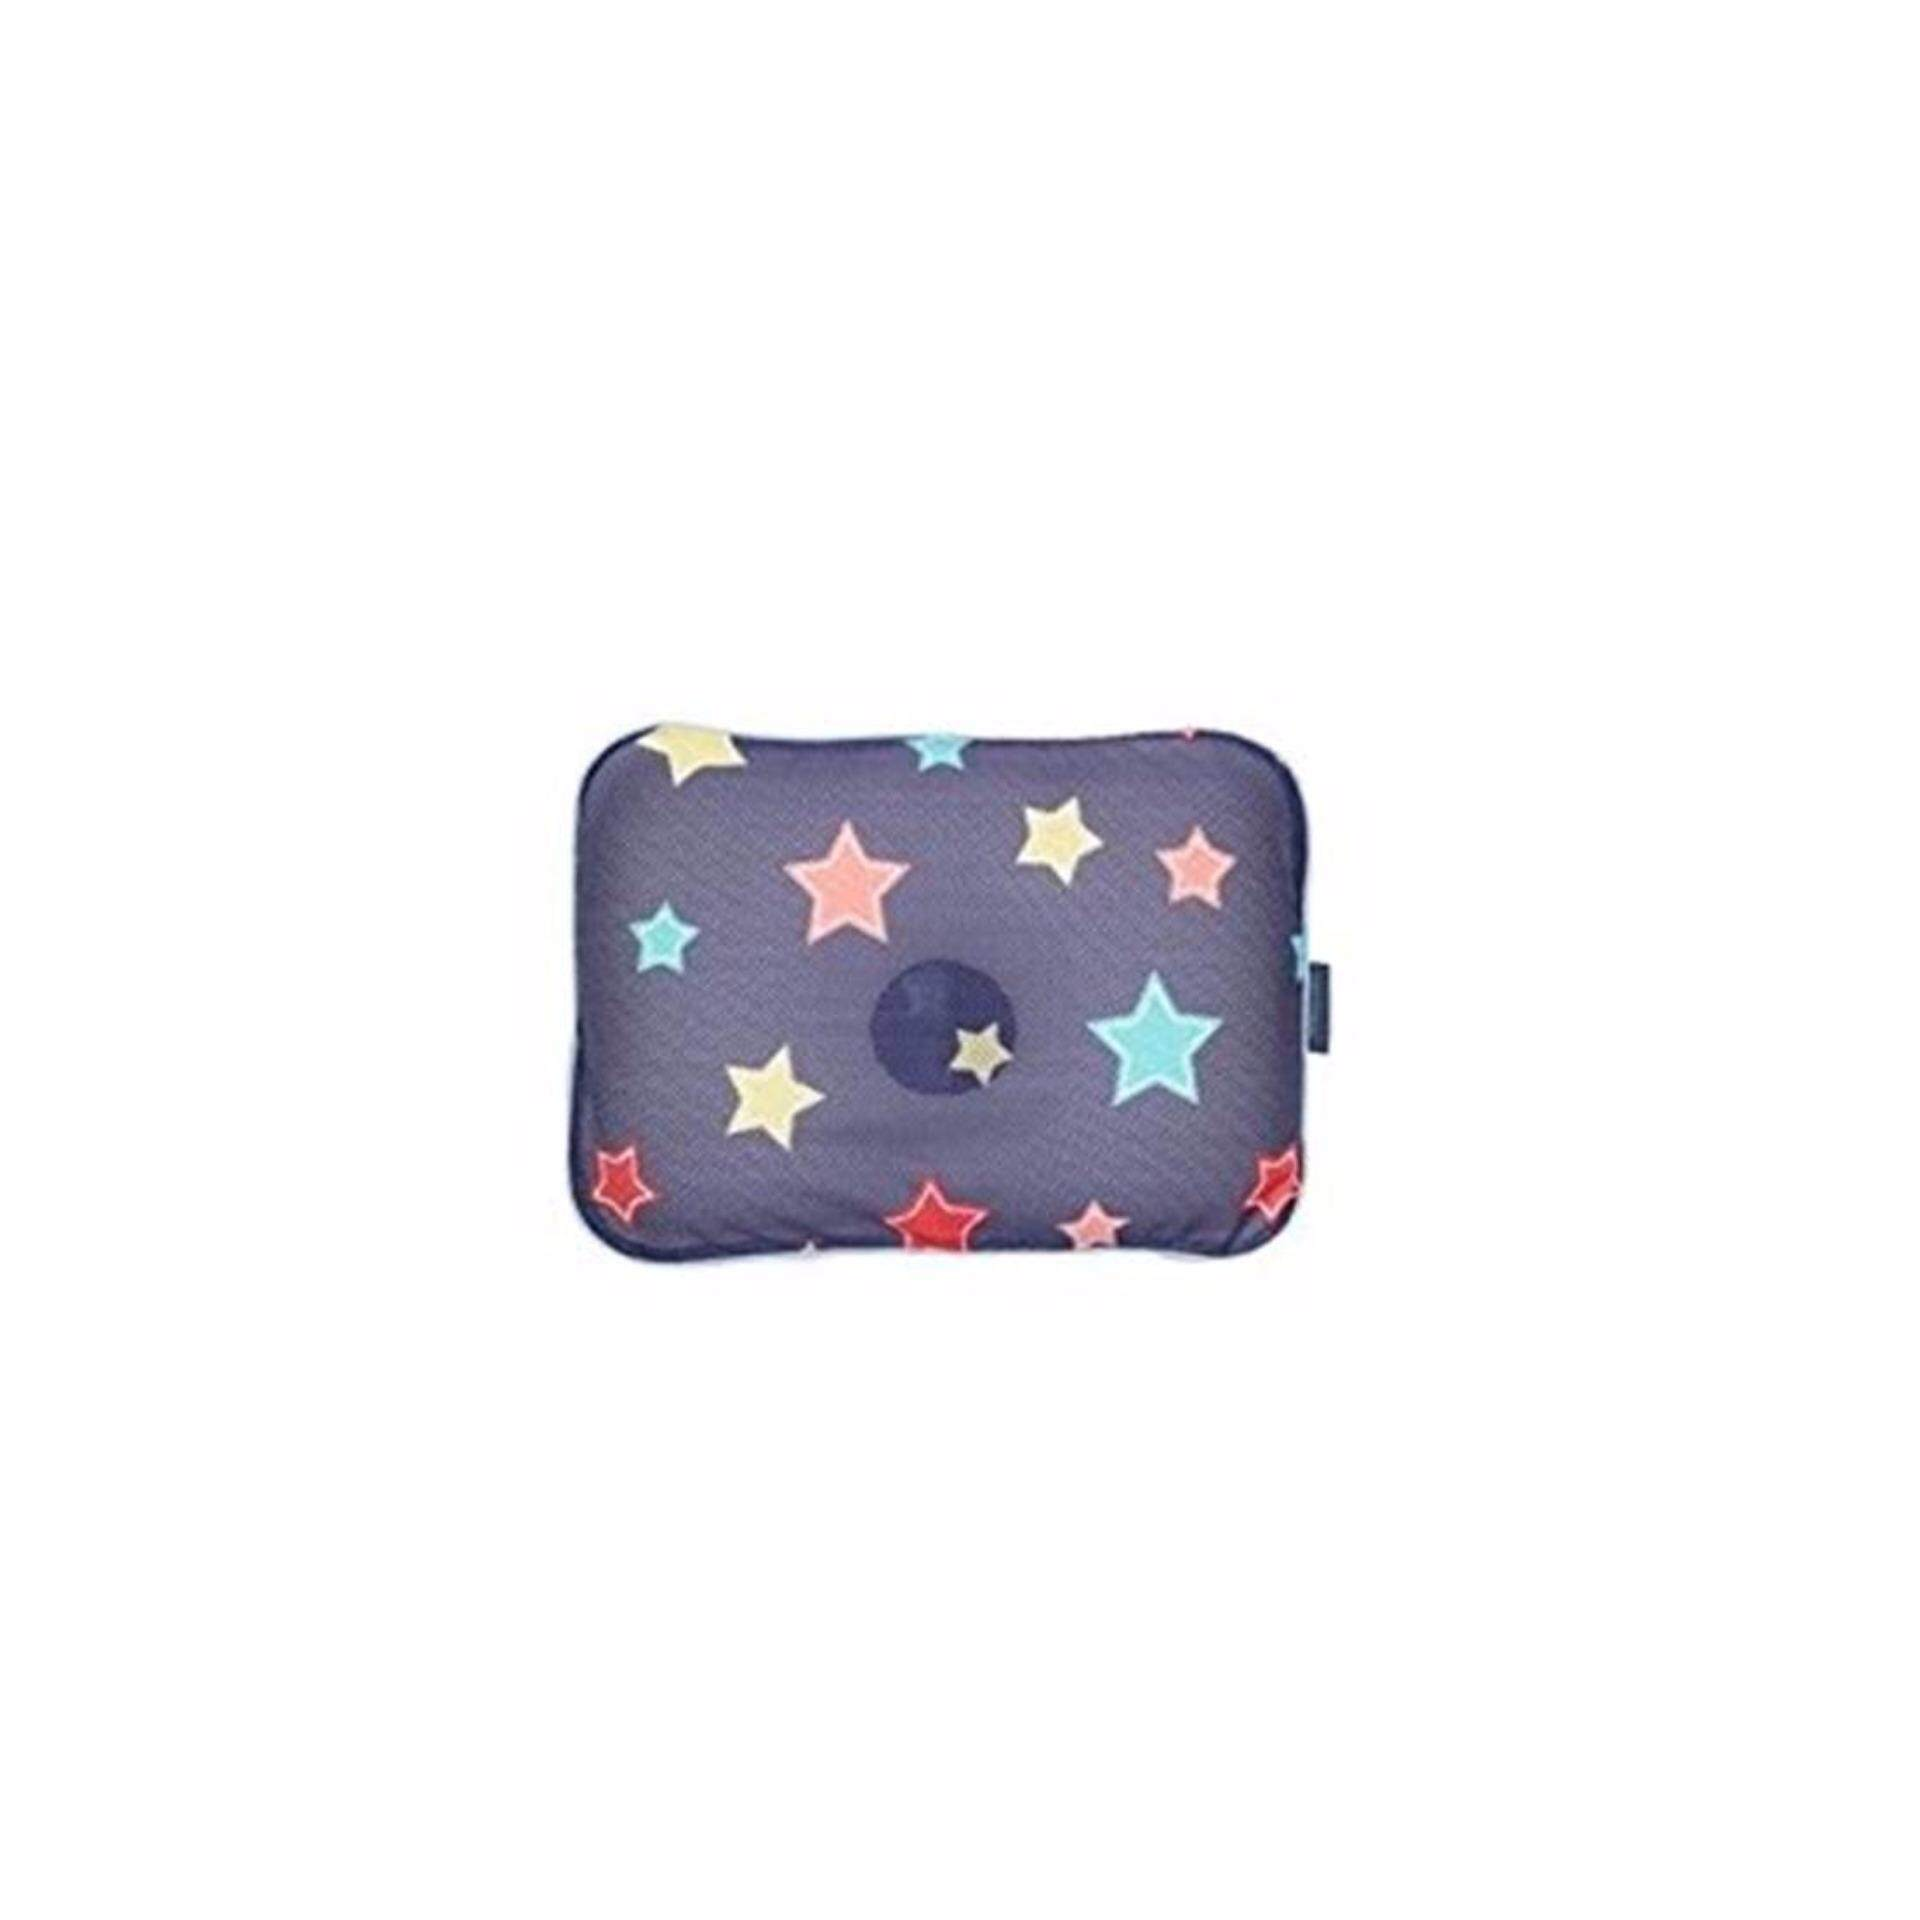 GioPillow M Size - Navy Star